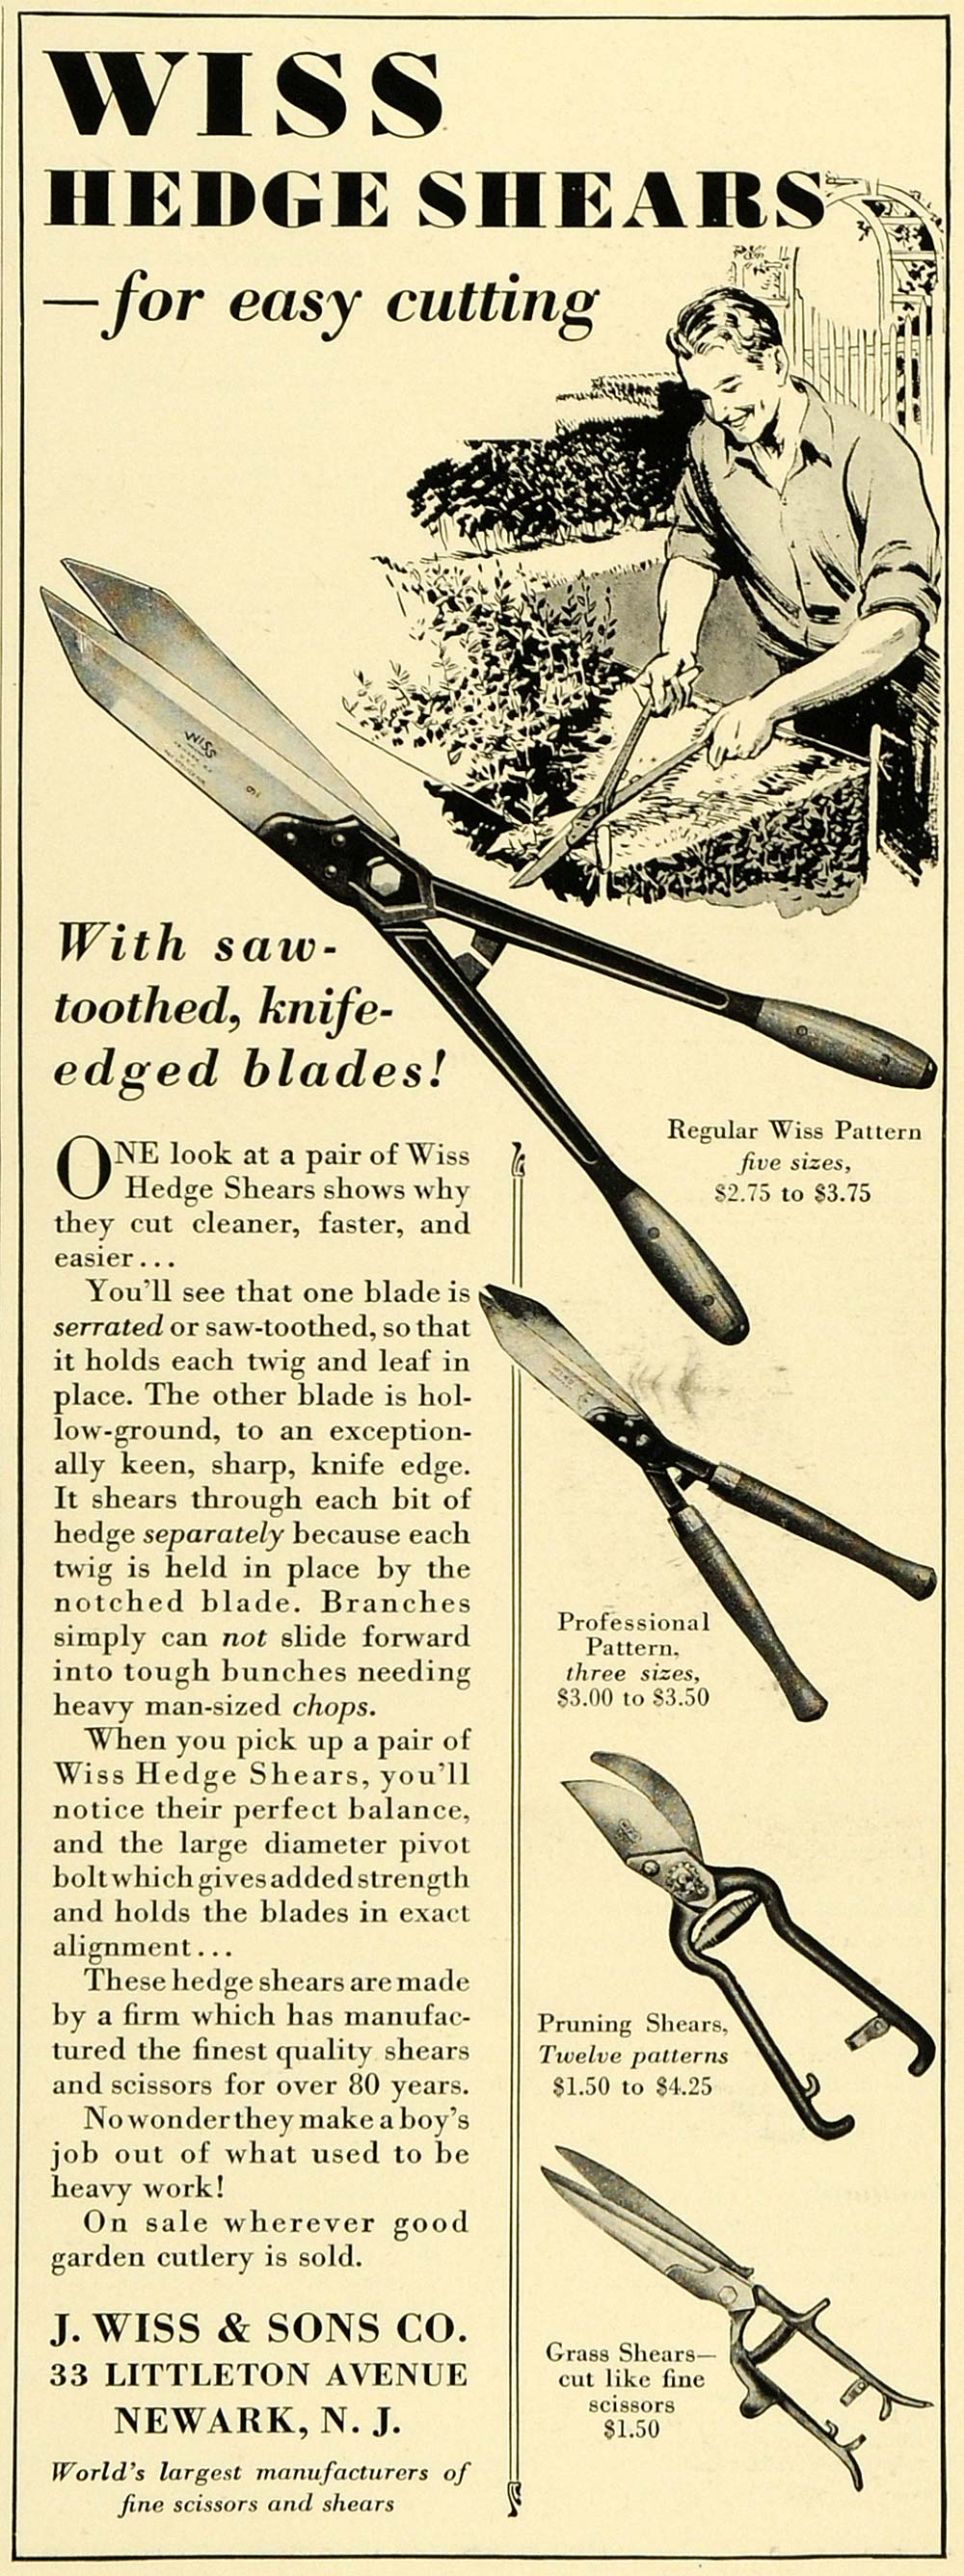 1930 Ad Wiss Hedge Shears Newark New Jersey Garden Bush Pruning Grass Tool HB3